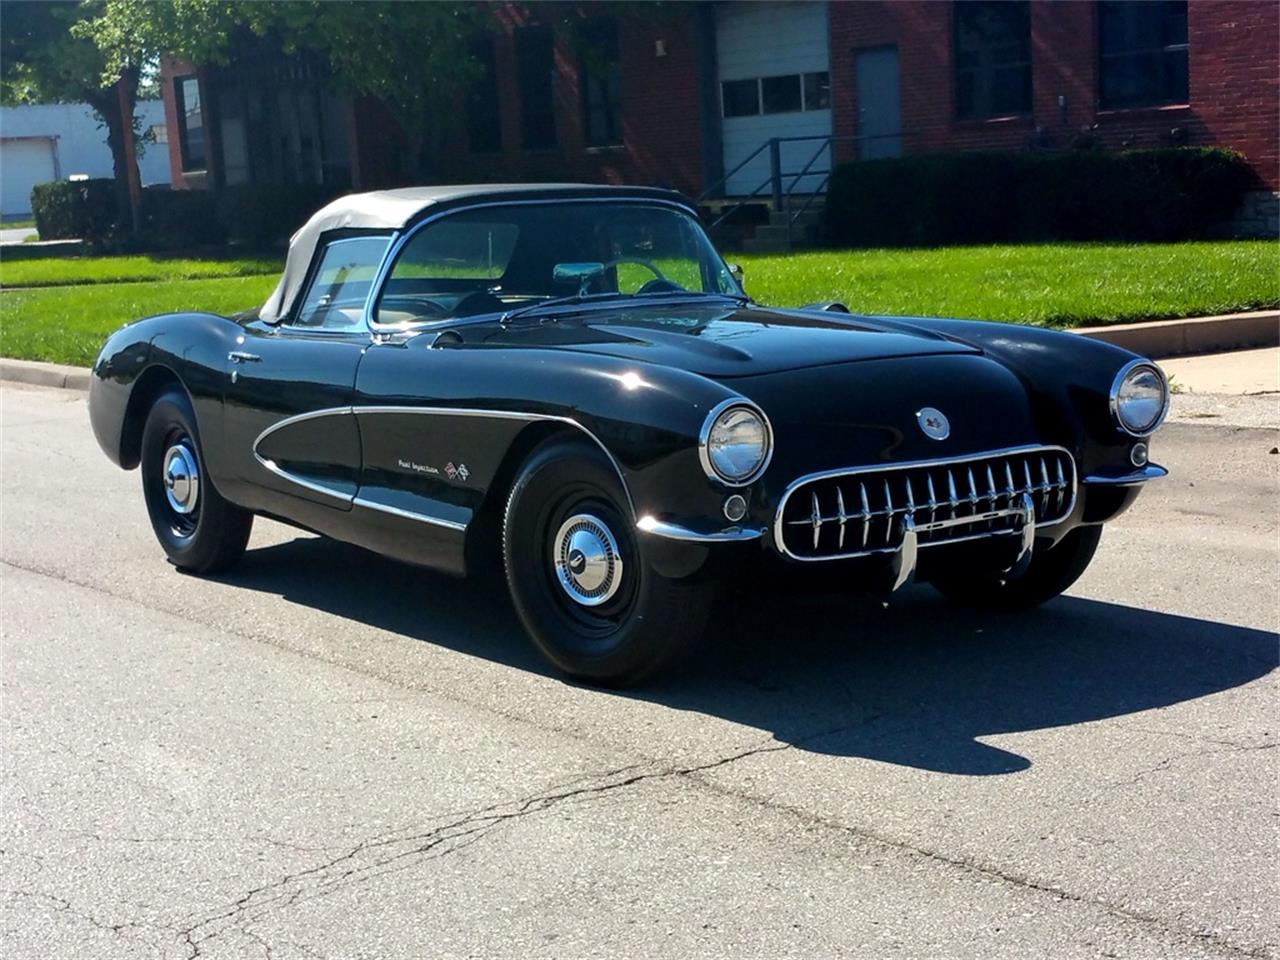 Large Picture of '57 Chevrolet Corvette located in Missouri - $107,500.00 Offered by Vintage Vettes, LLC - MO1R